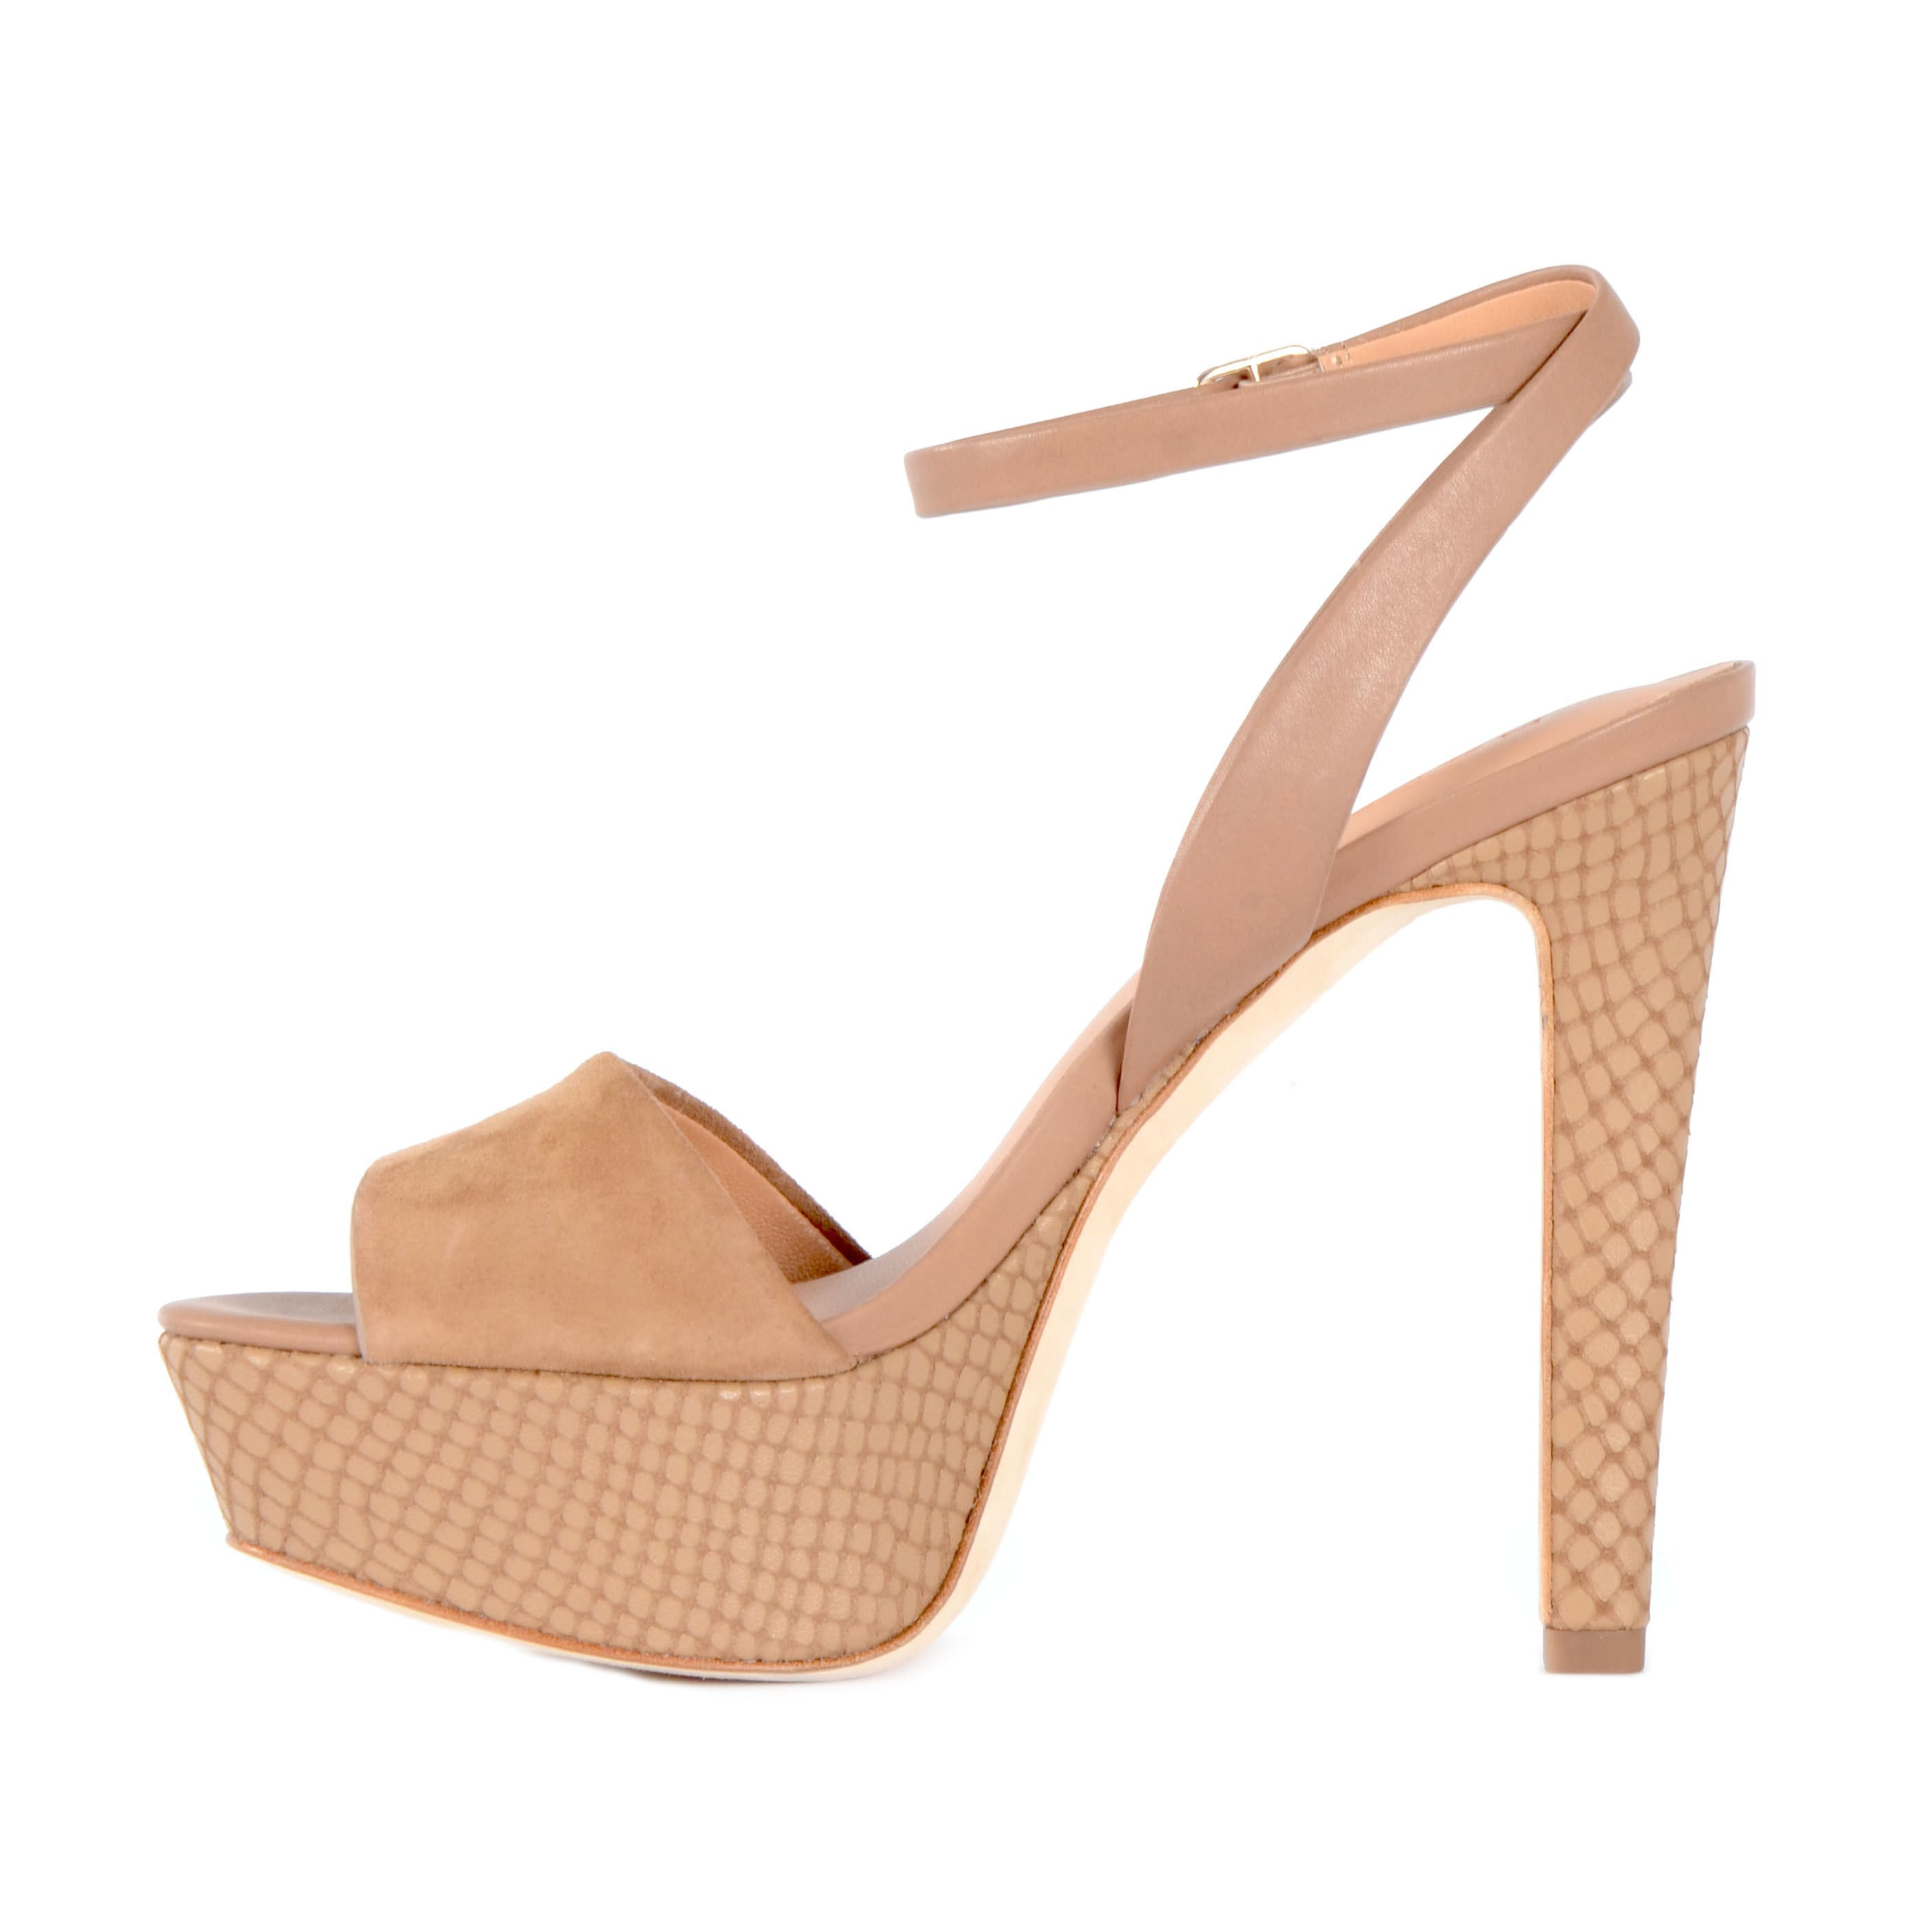 50e89c0927e0 Shop Halston Heritage Women s Bobbie Beige Leather and Suede  Snakeskin-print Platform Sandals - Free Shipping Today - Overstock -  13655332